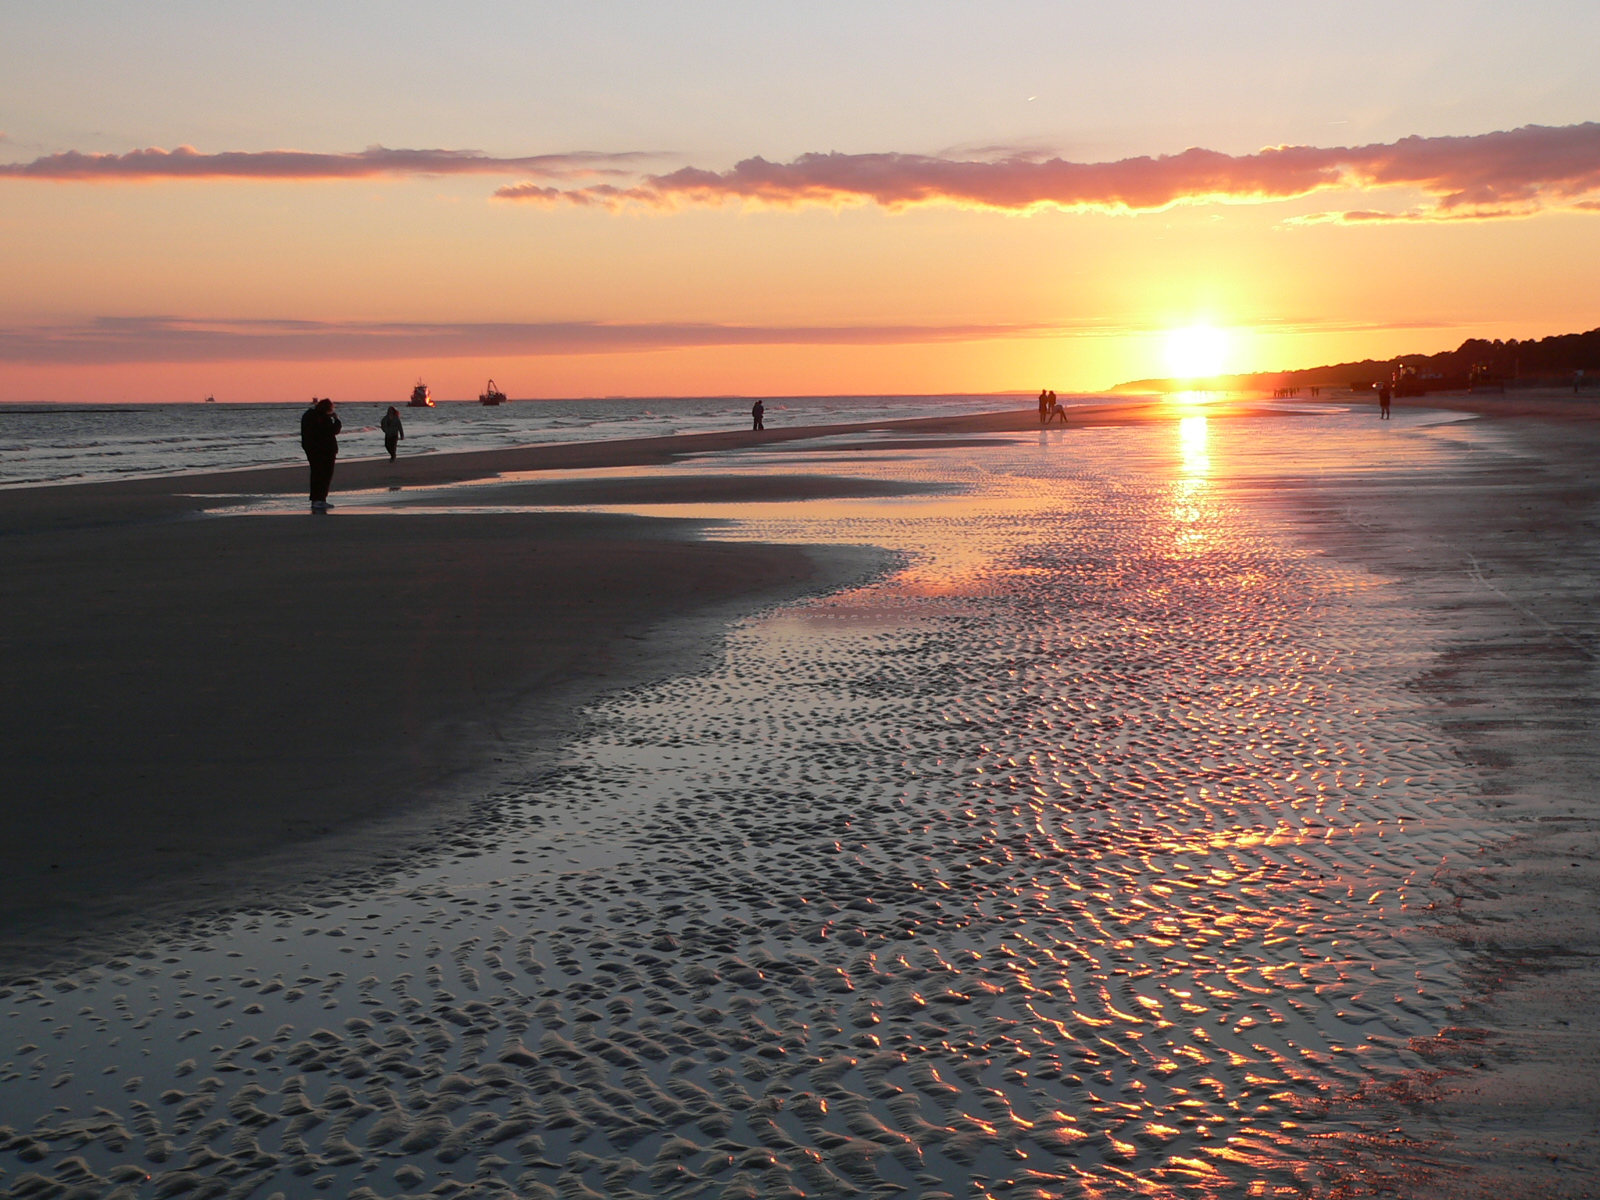 Sunset_at_the_Beach_on_Hilton_Head_Island.jpg